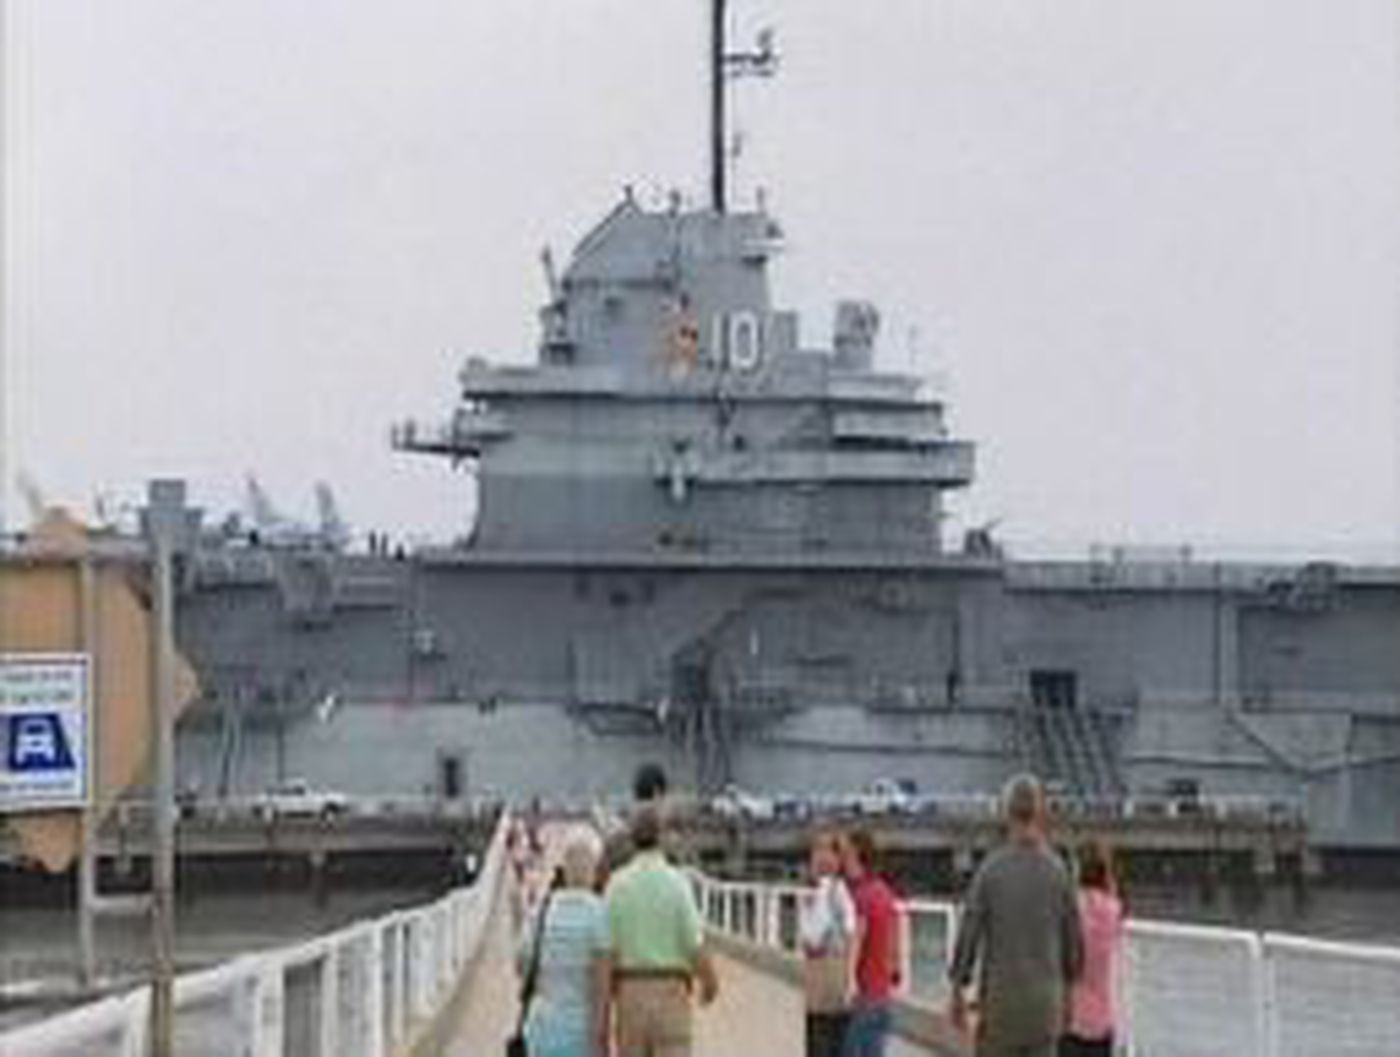 Residents Weigh In On Charleston Maritime Museum